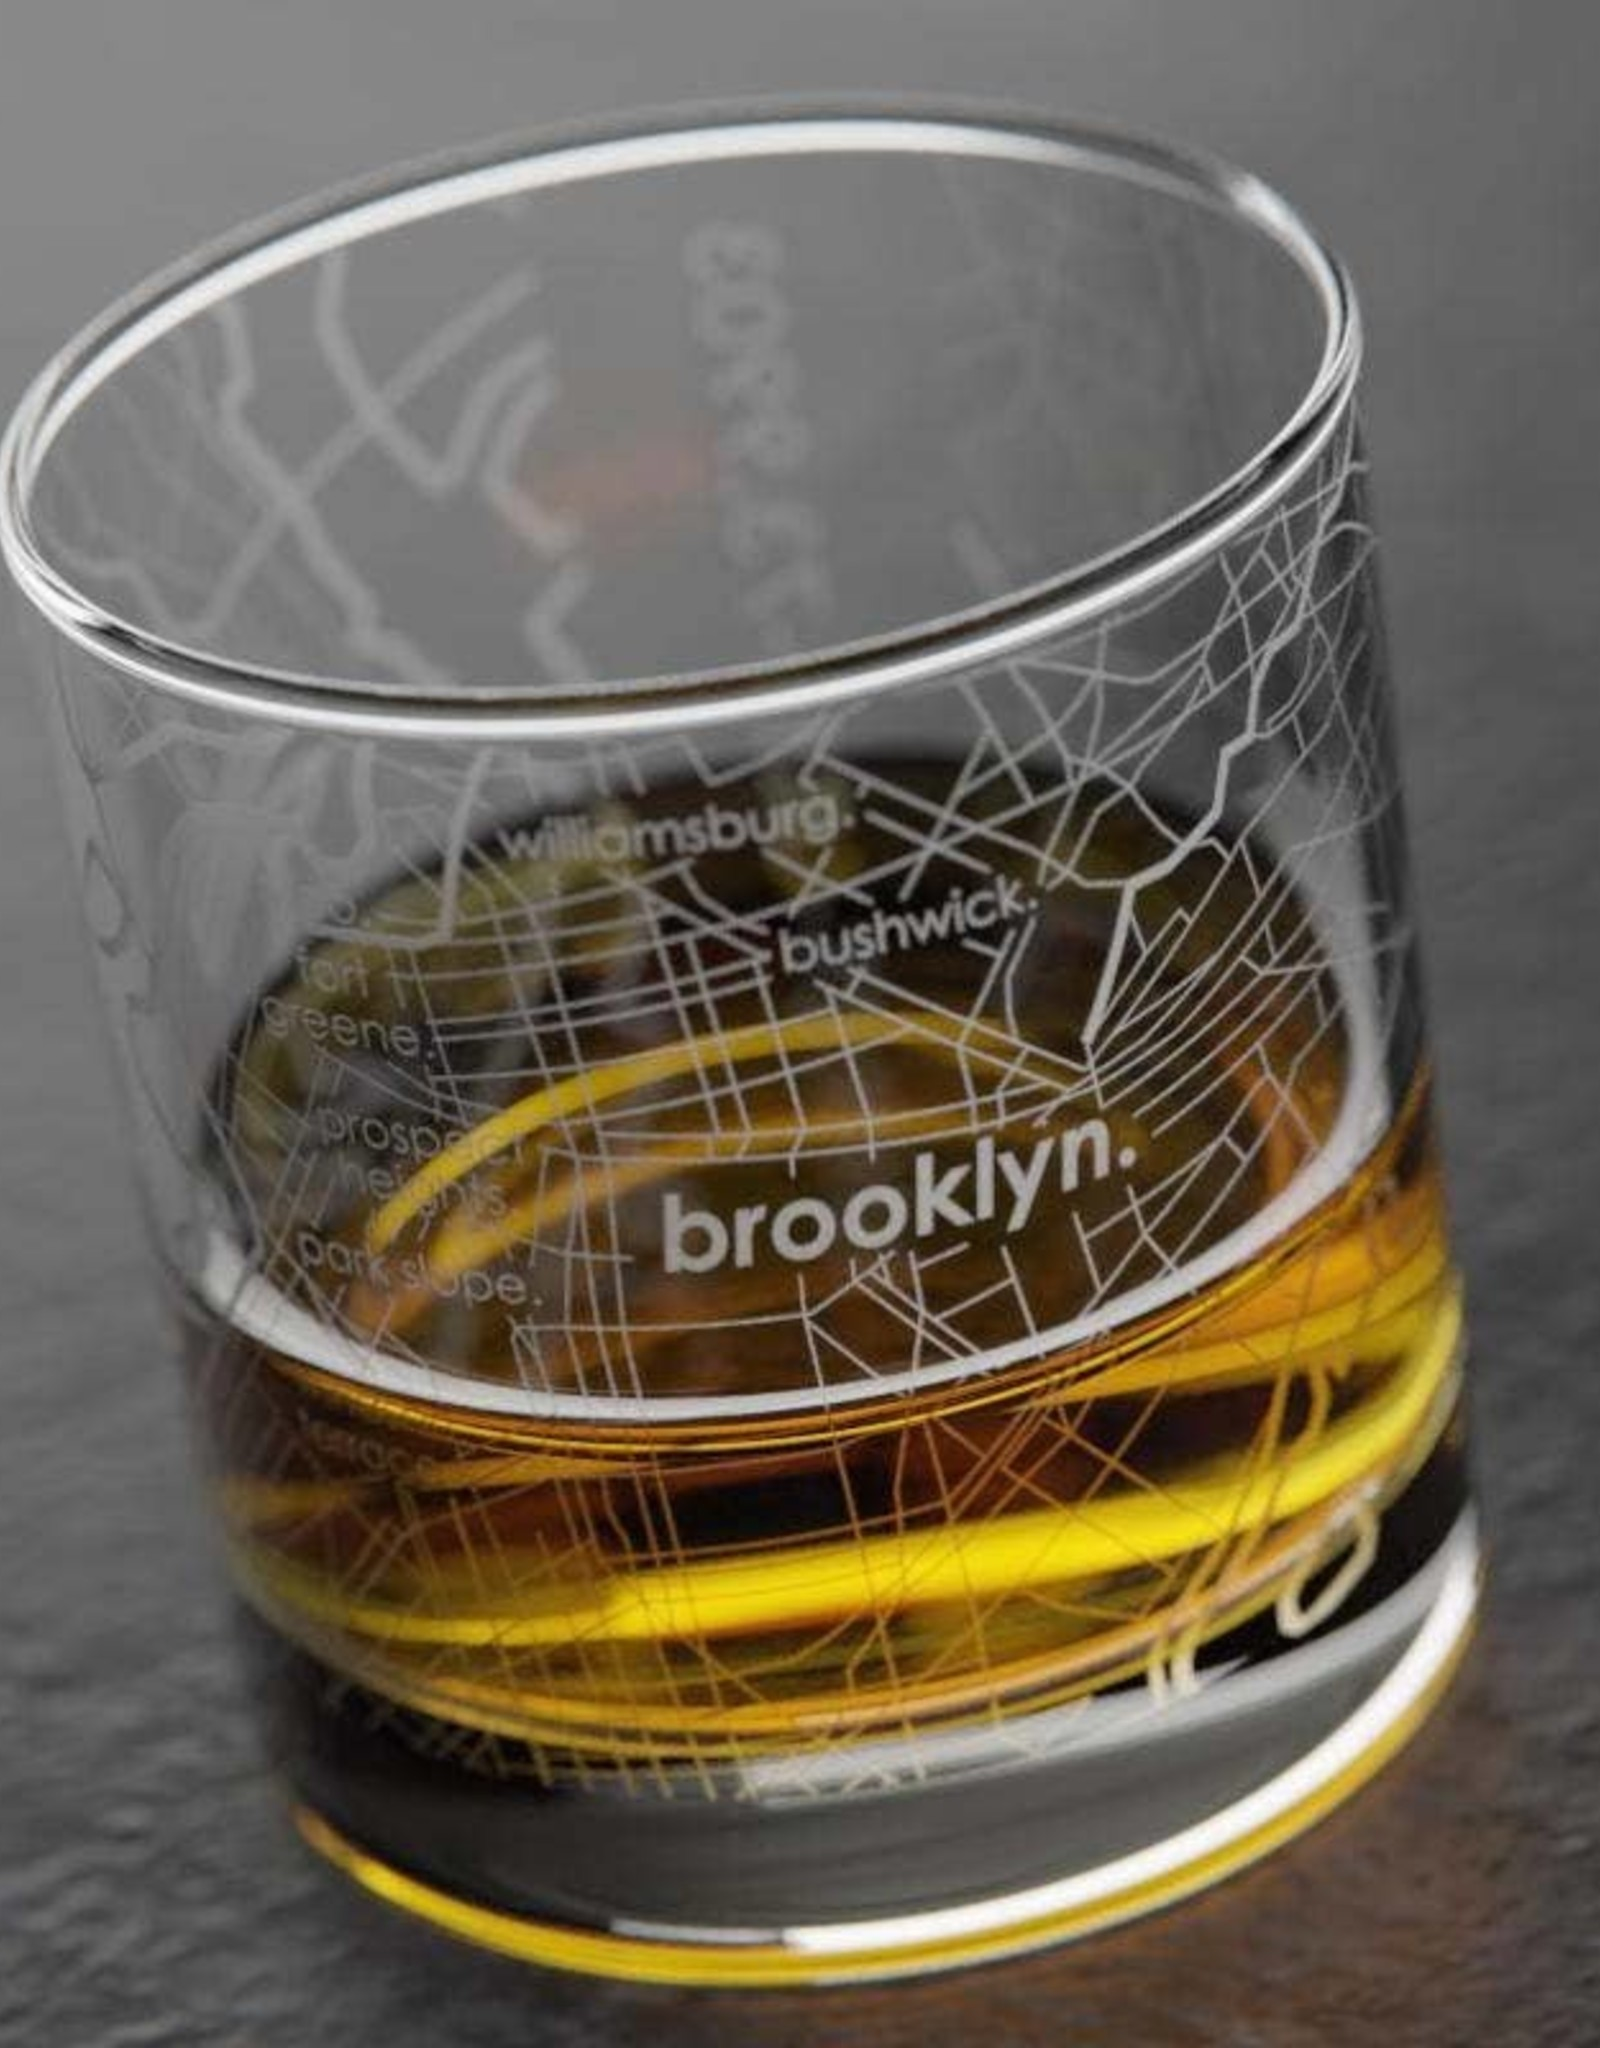 Well Told Brooklyn Rocks Whiskey Glass